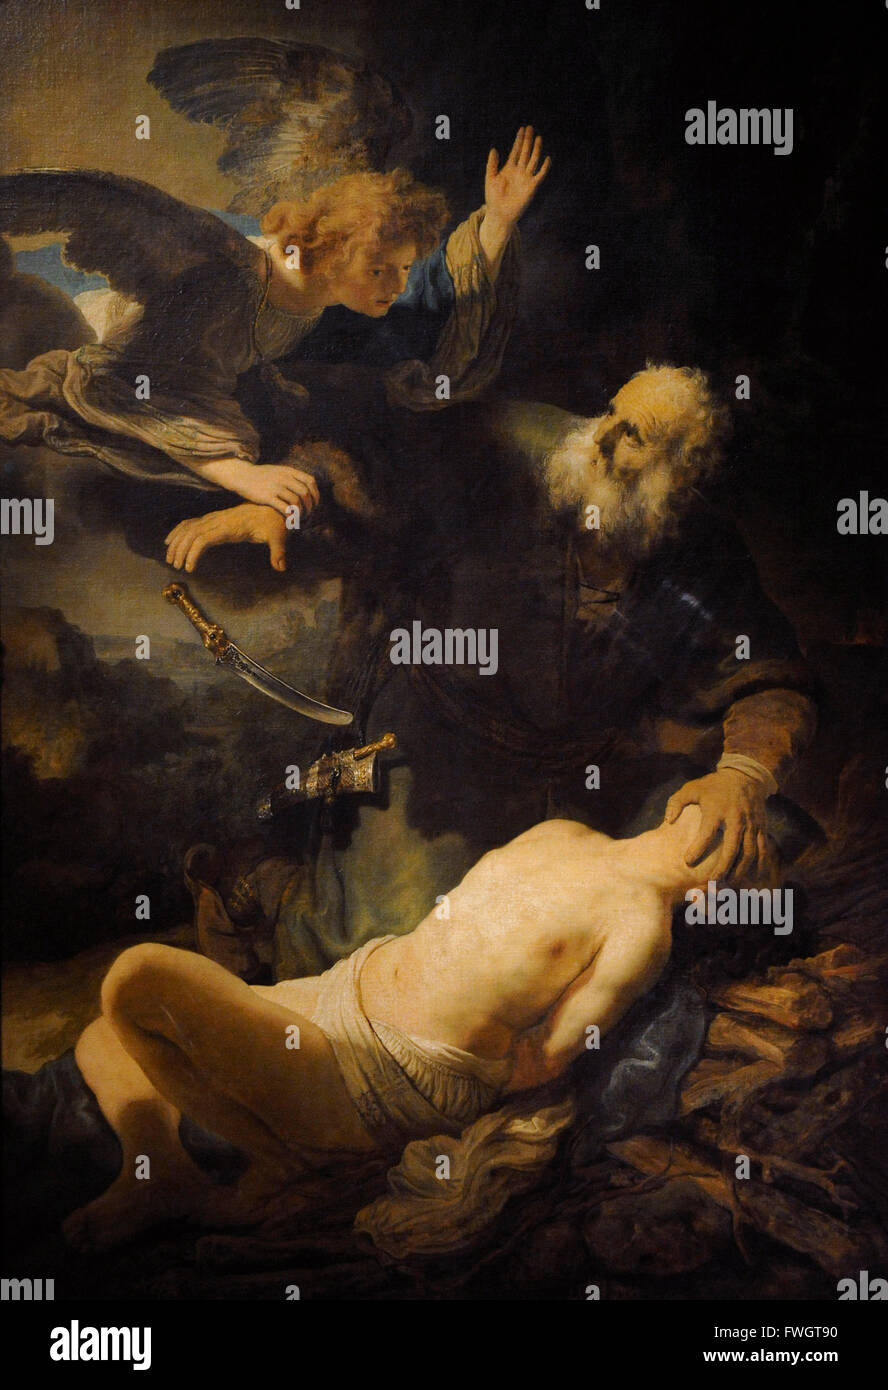 Rembrandt Harmenszoon van Rijn (1606-1669). Dutch painter. Sacrifice of Isaac, 1635. Oil on canvas. The State Hermitage - Stock Image